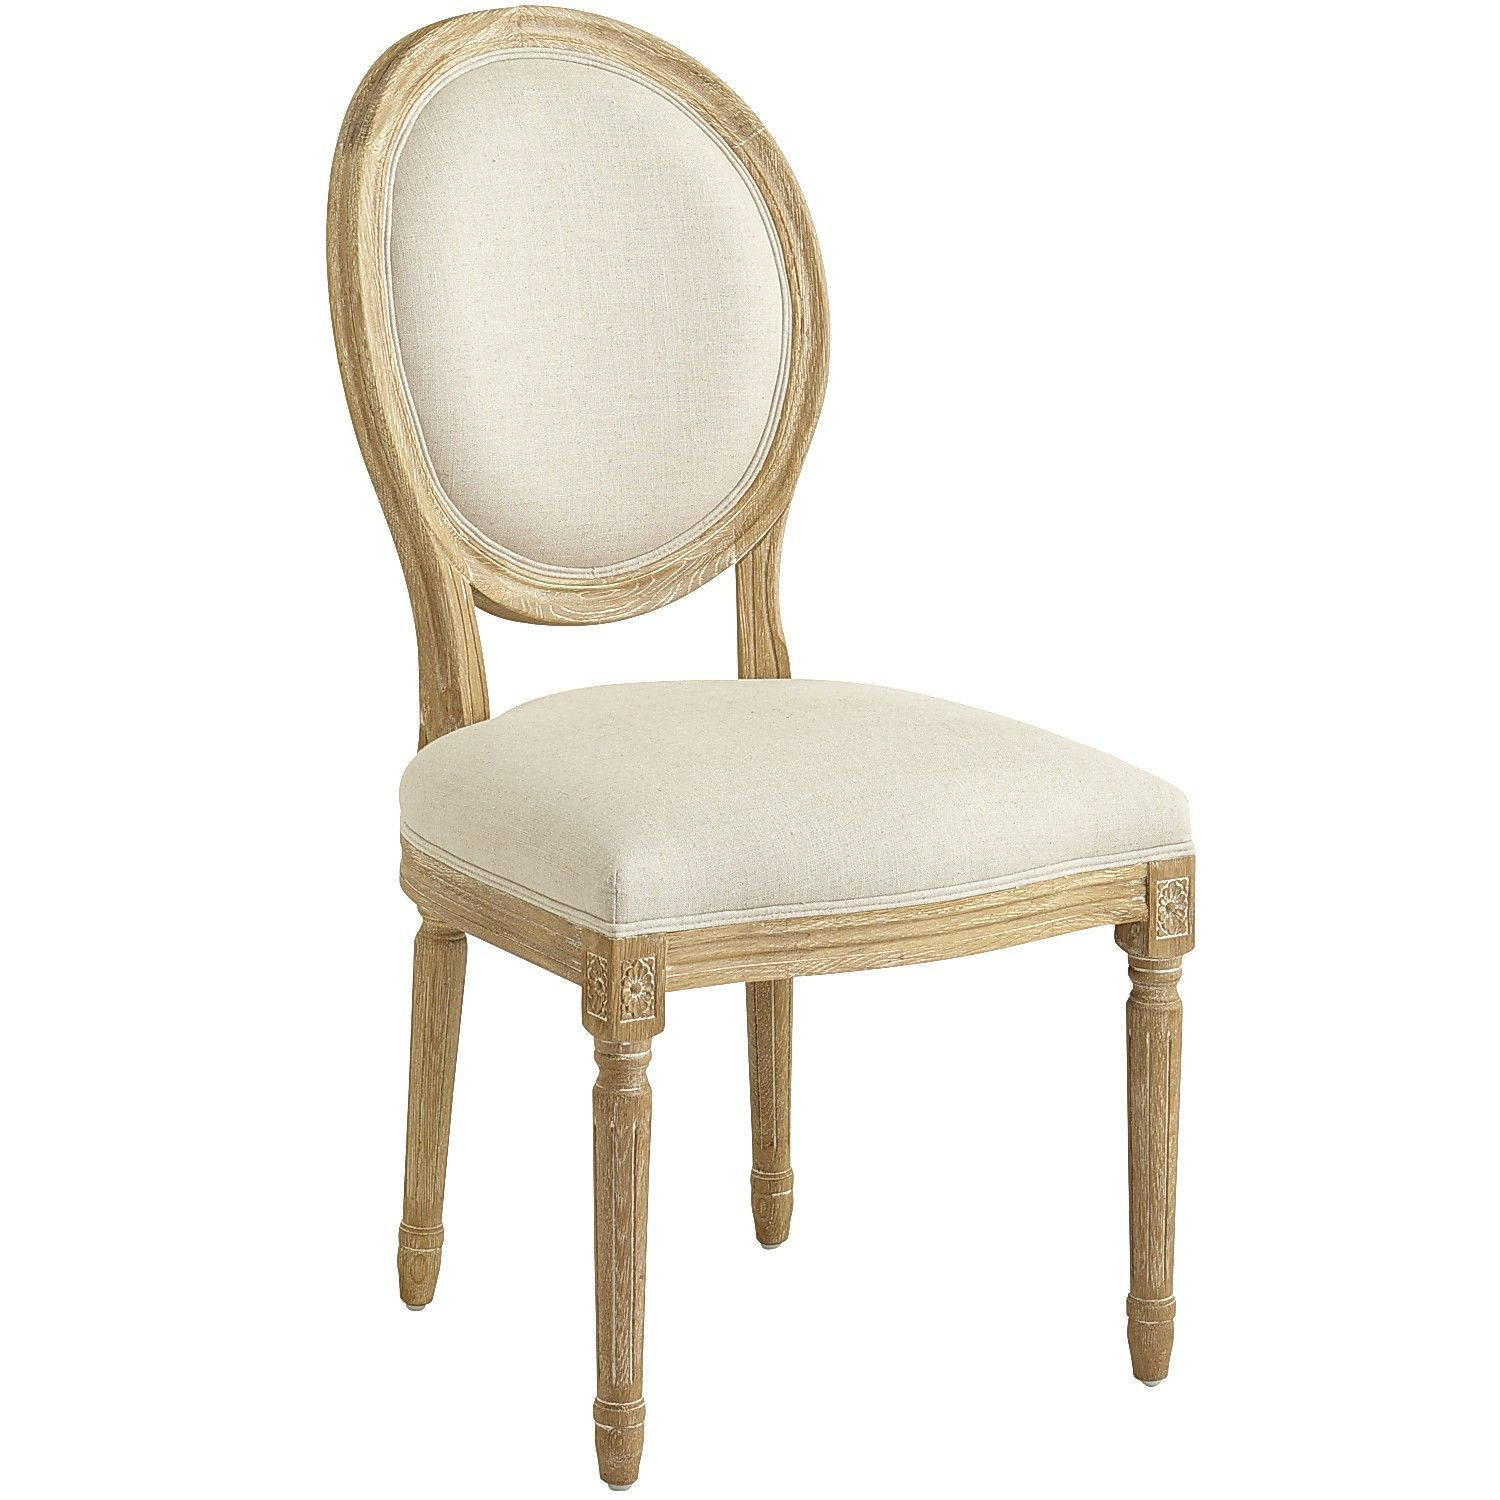 Eliane Dining Chair - Flax | Pier 1 Imports | House & Home ...